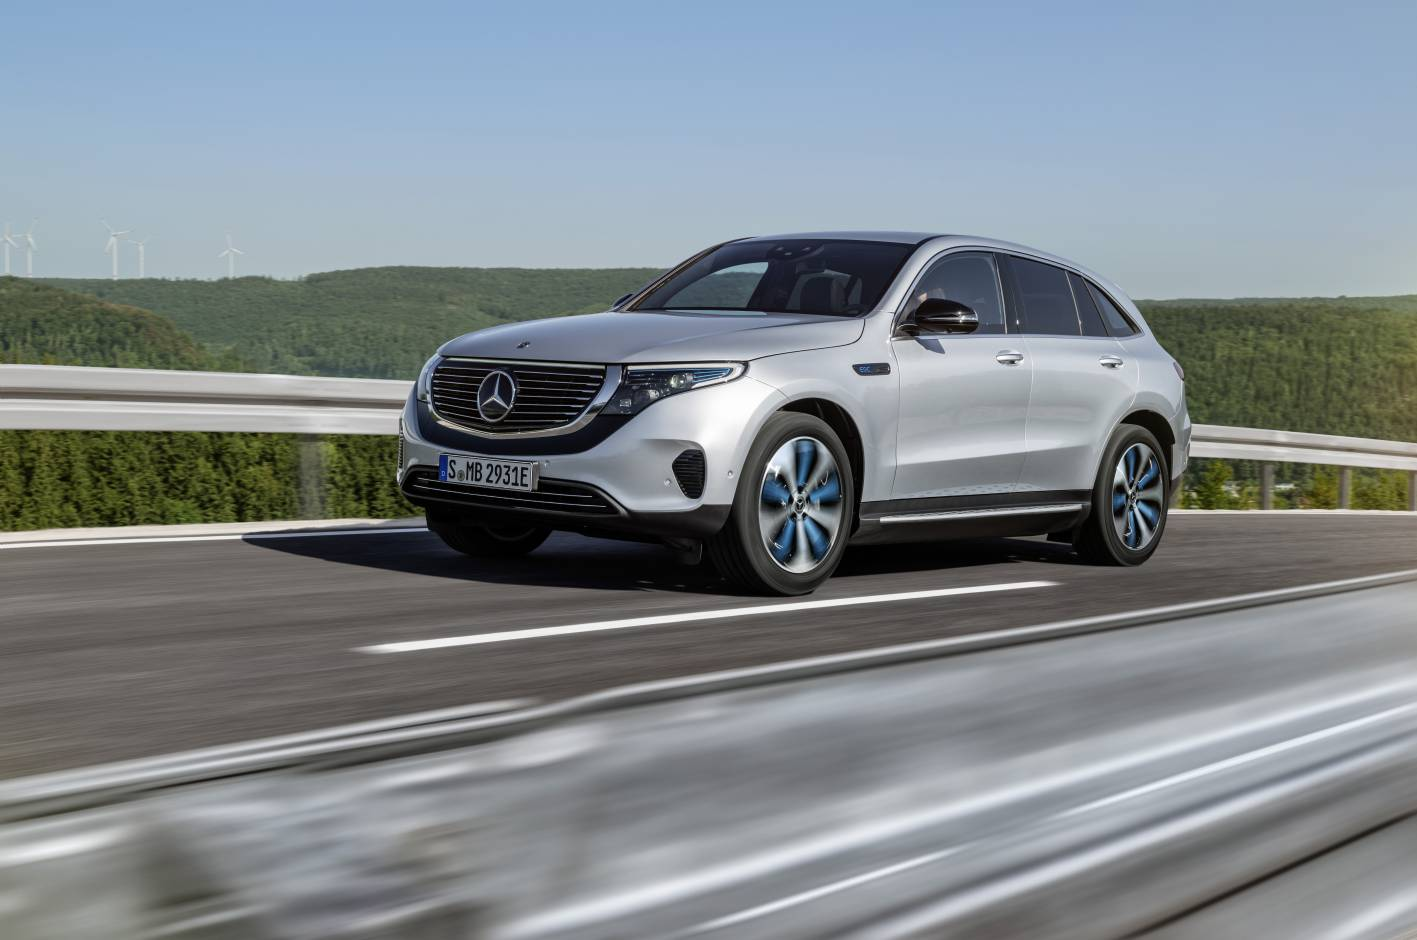 all-electric mercedes-benz eqc to enter production in 2019